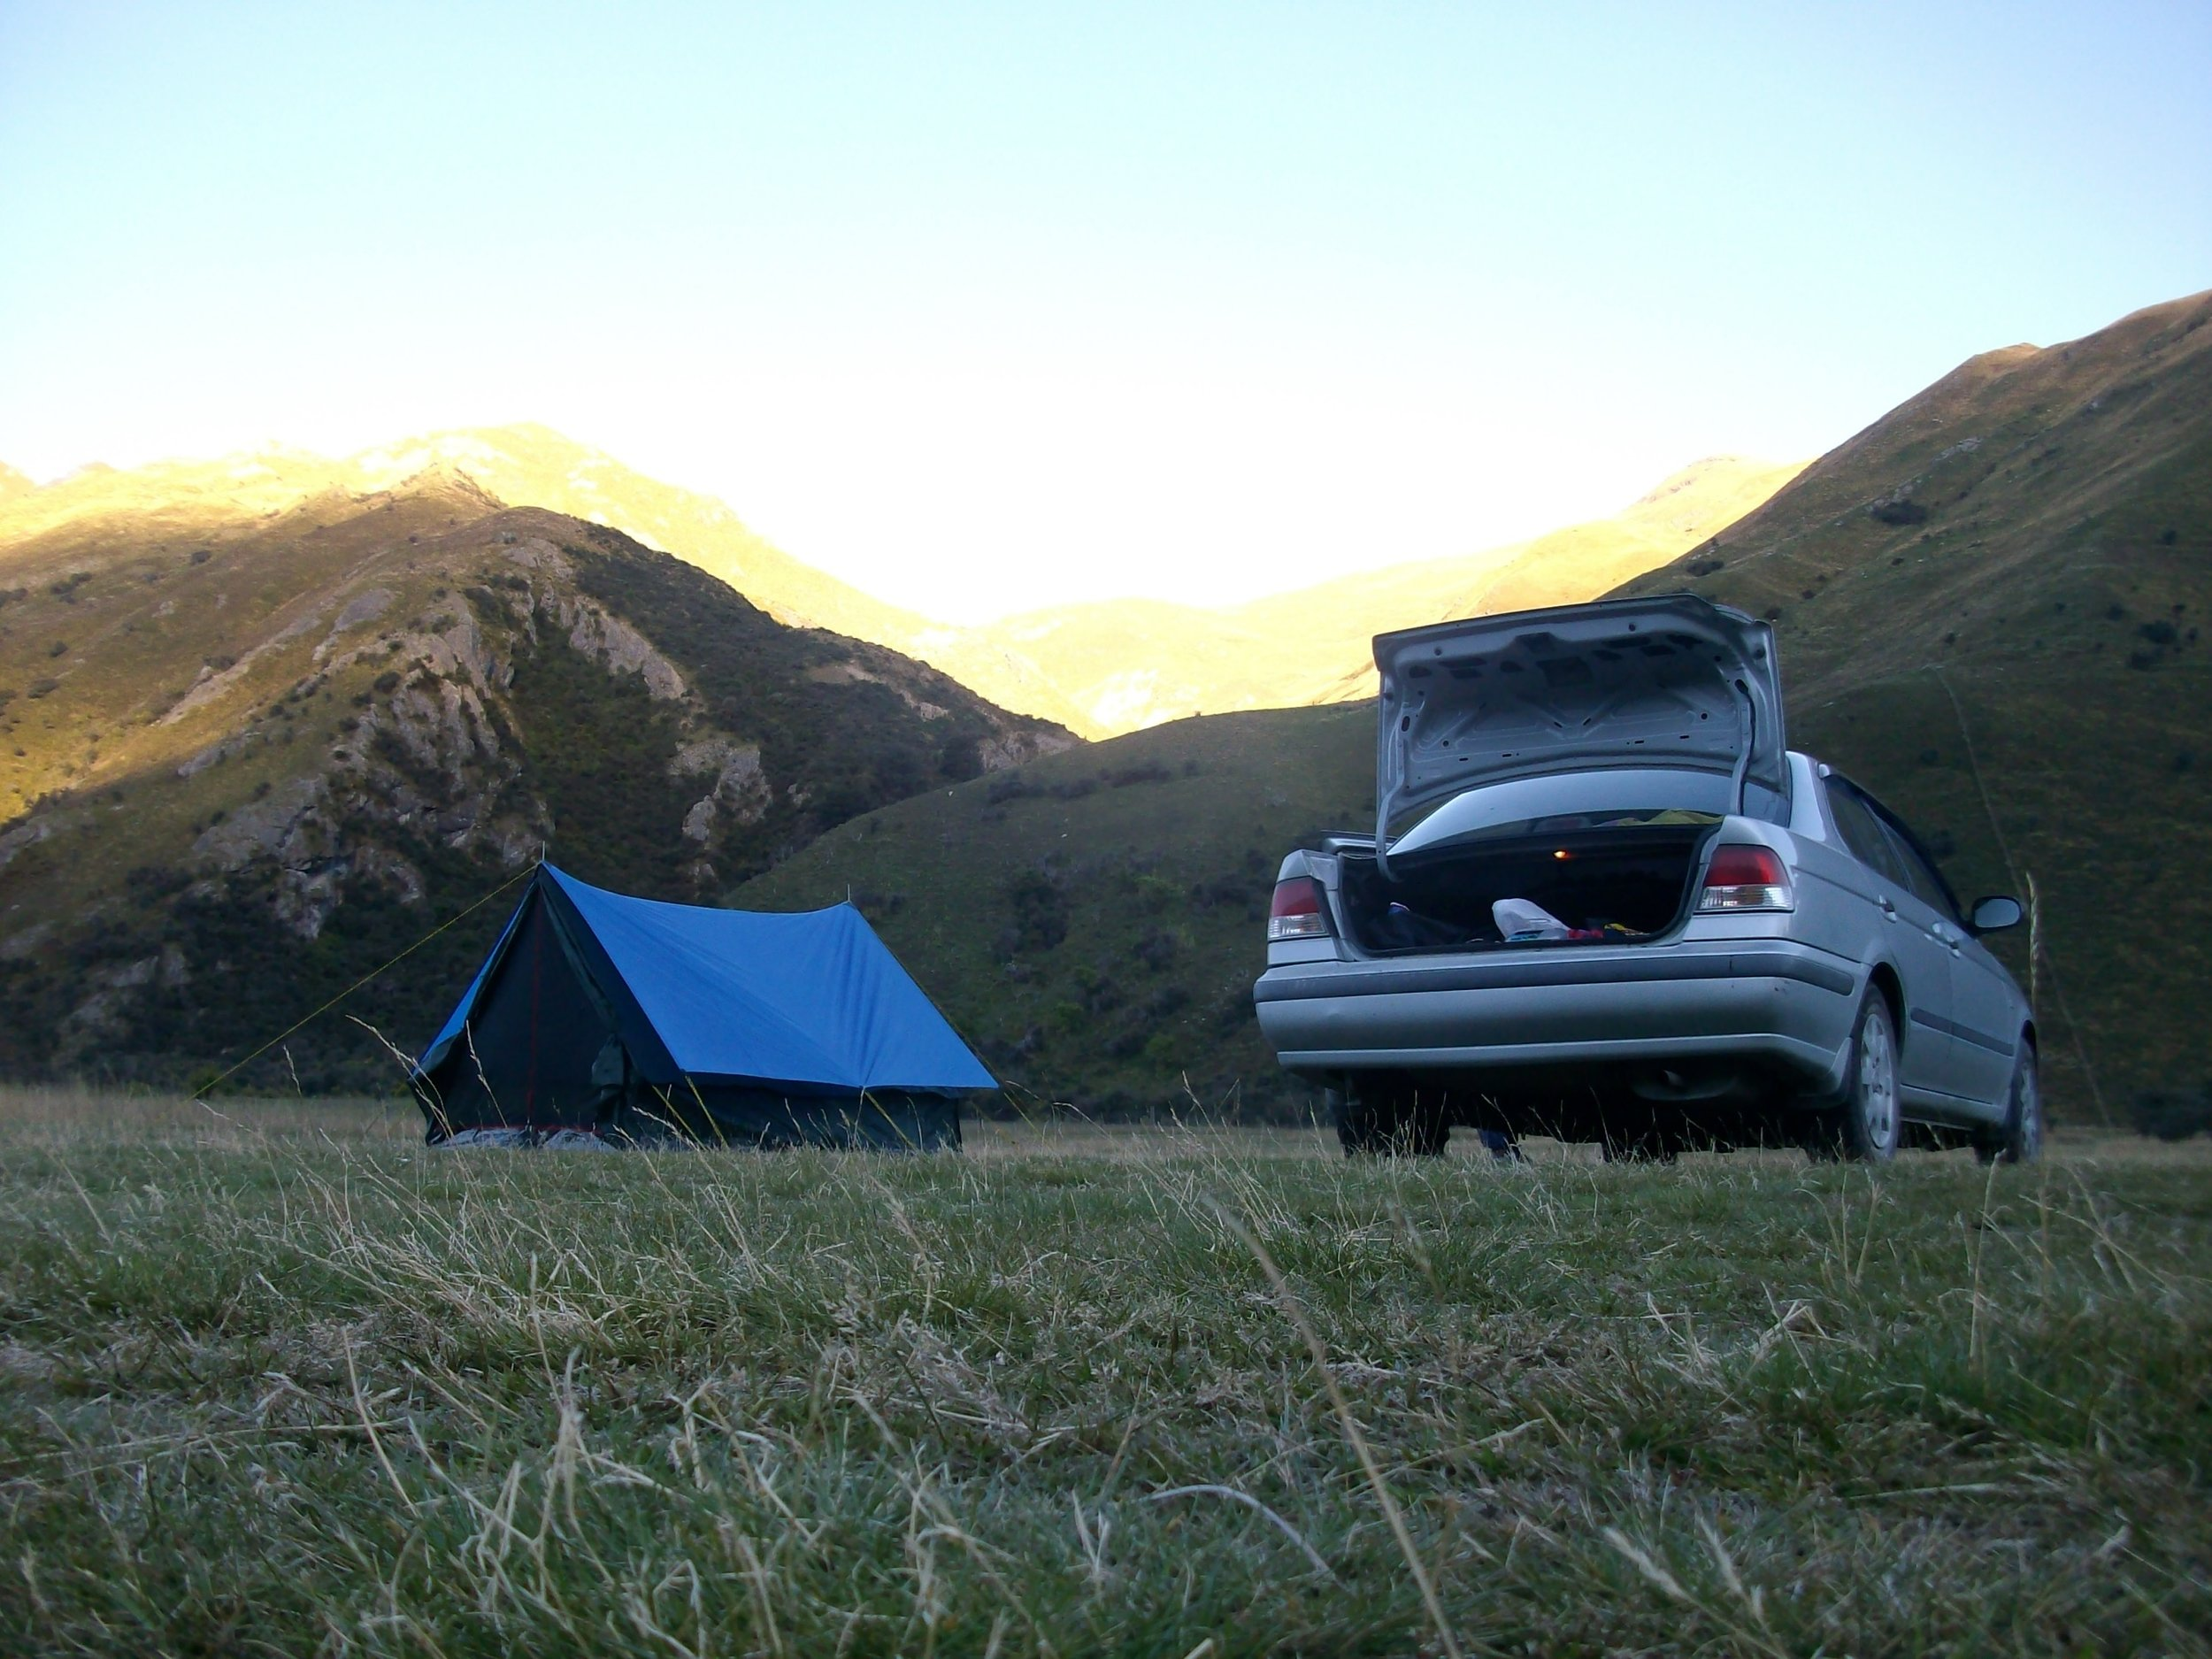 Life in a tent in New Zealand